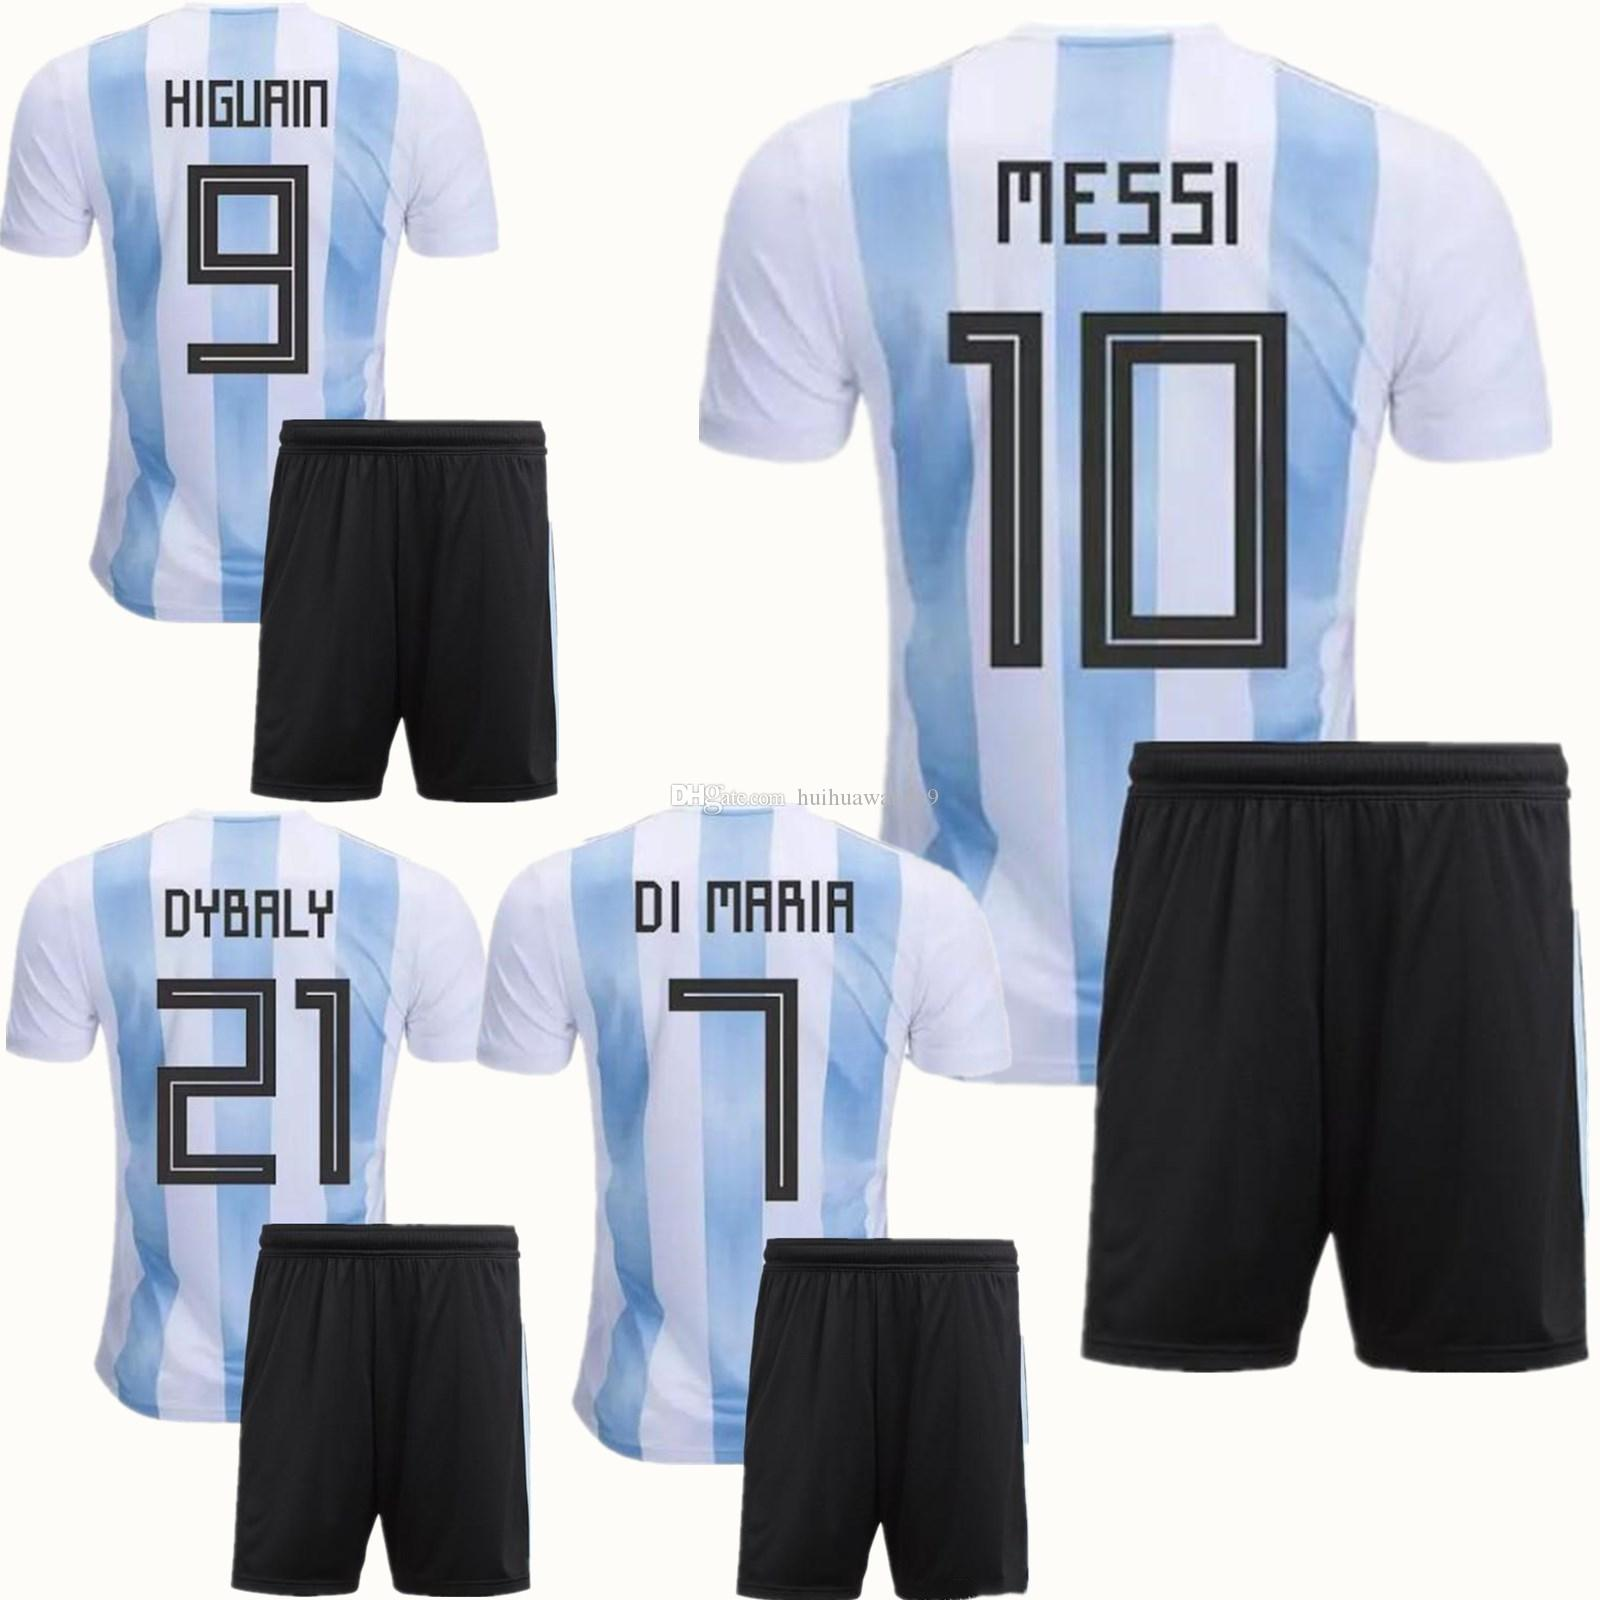 33a0b5091 2019 2018 Argentina World Cup Soccer Sets 10 MESSI DI MARIA AGUERO KOMPANY  DYBALA Jersey Home Blue Kit Adults Uniform Argentina Football Set From ...